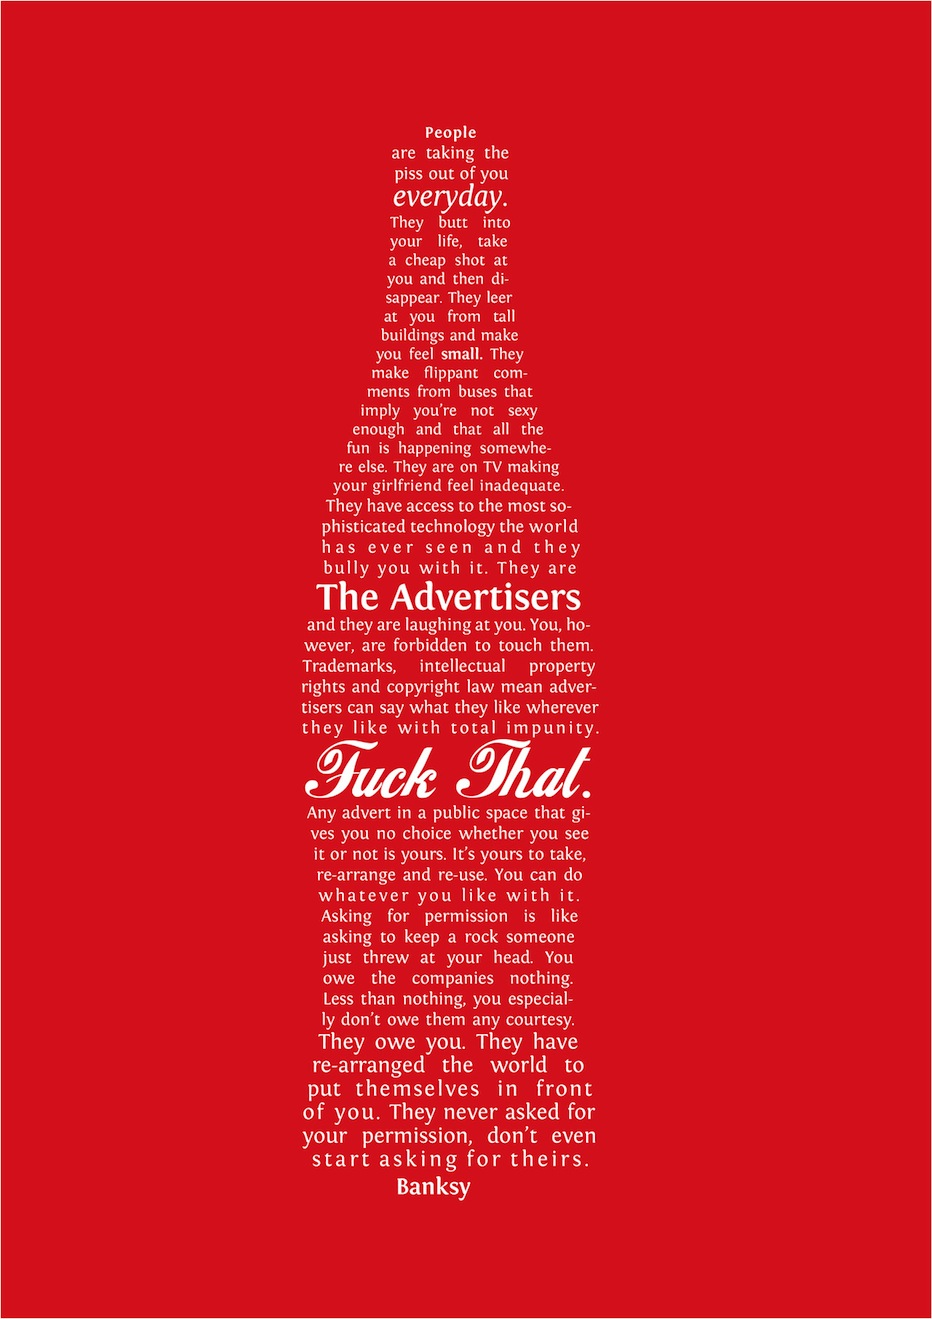 a message about advertising from Banksy.